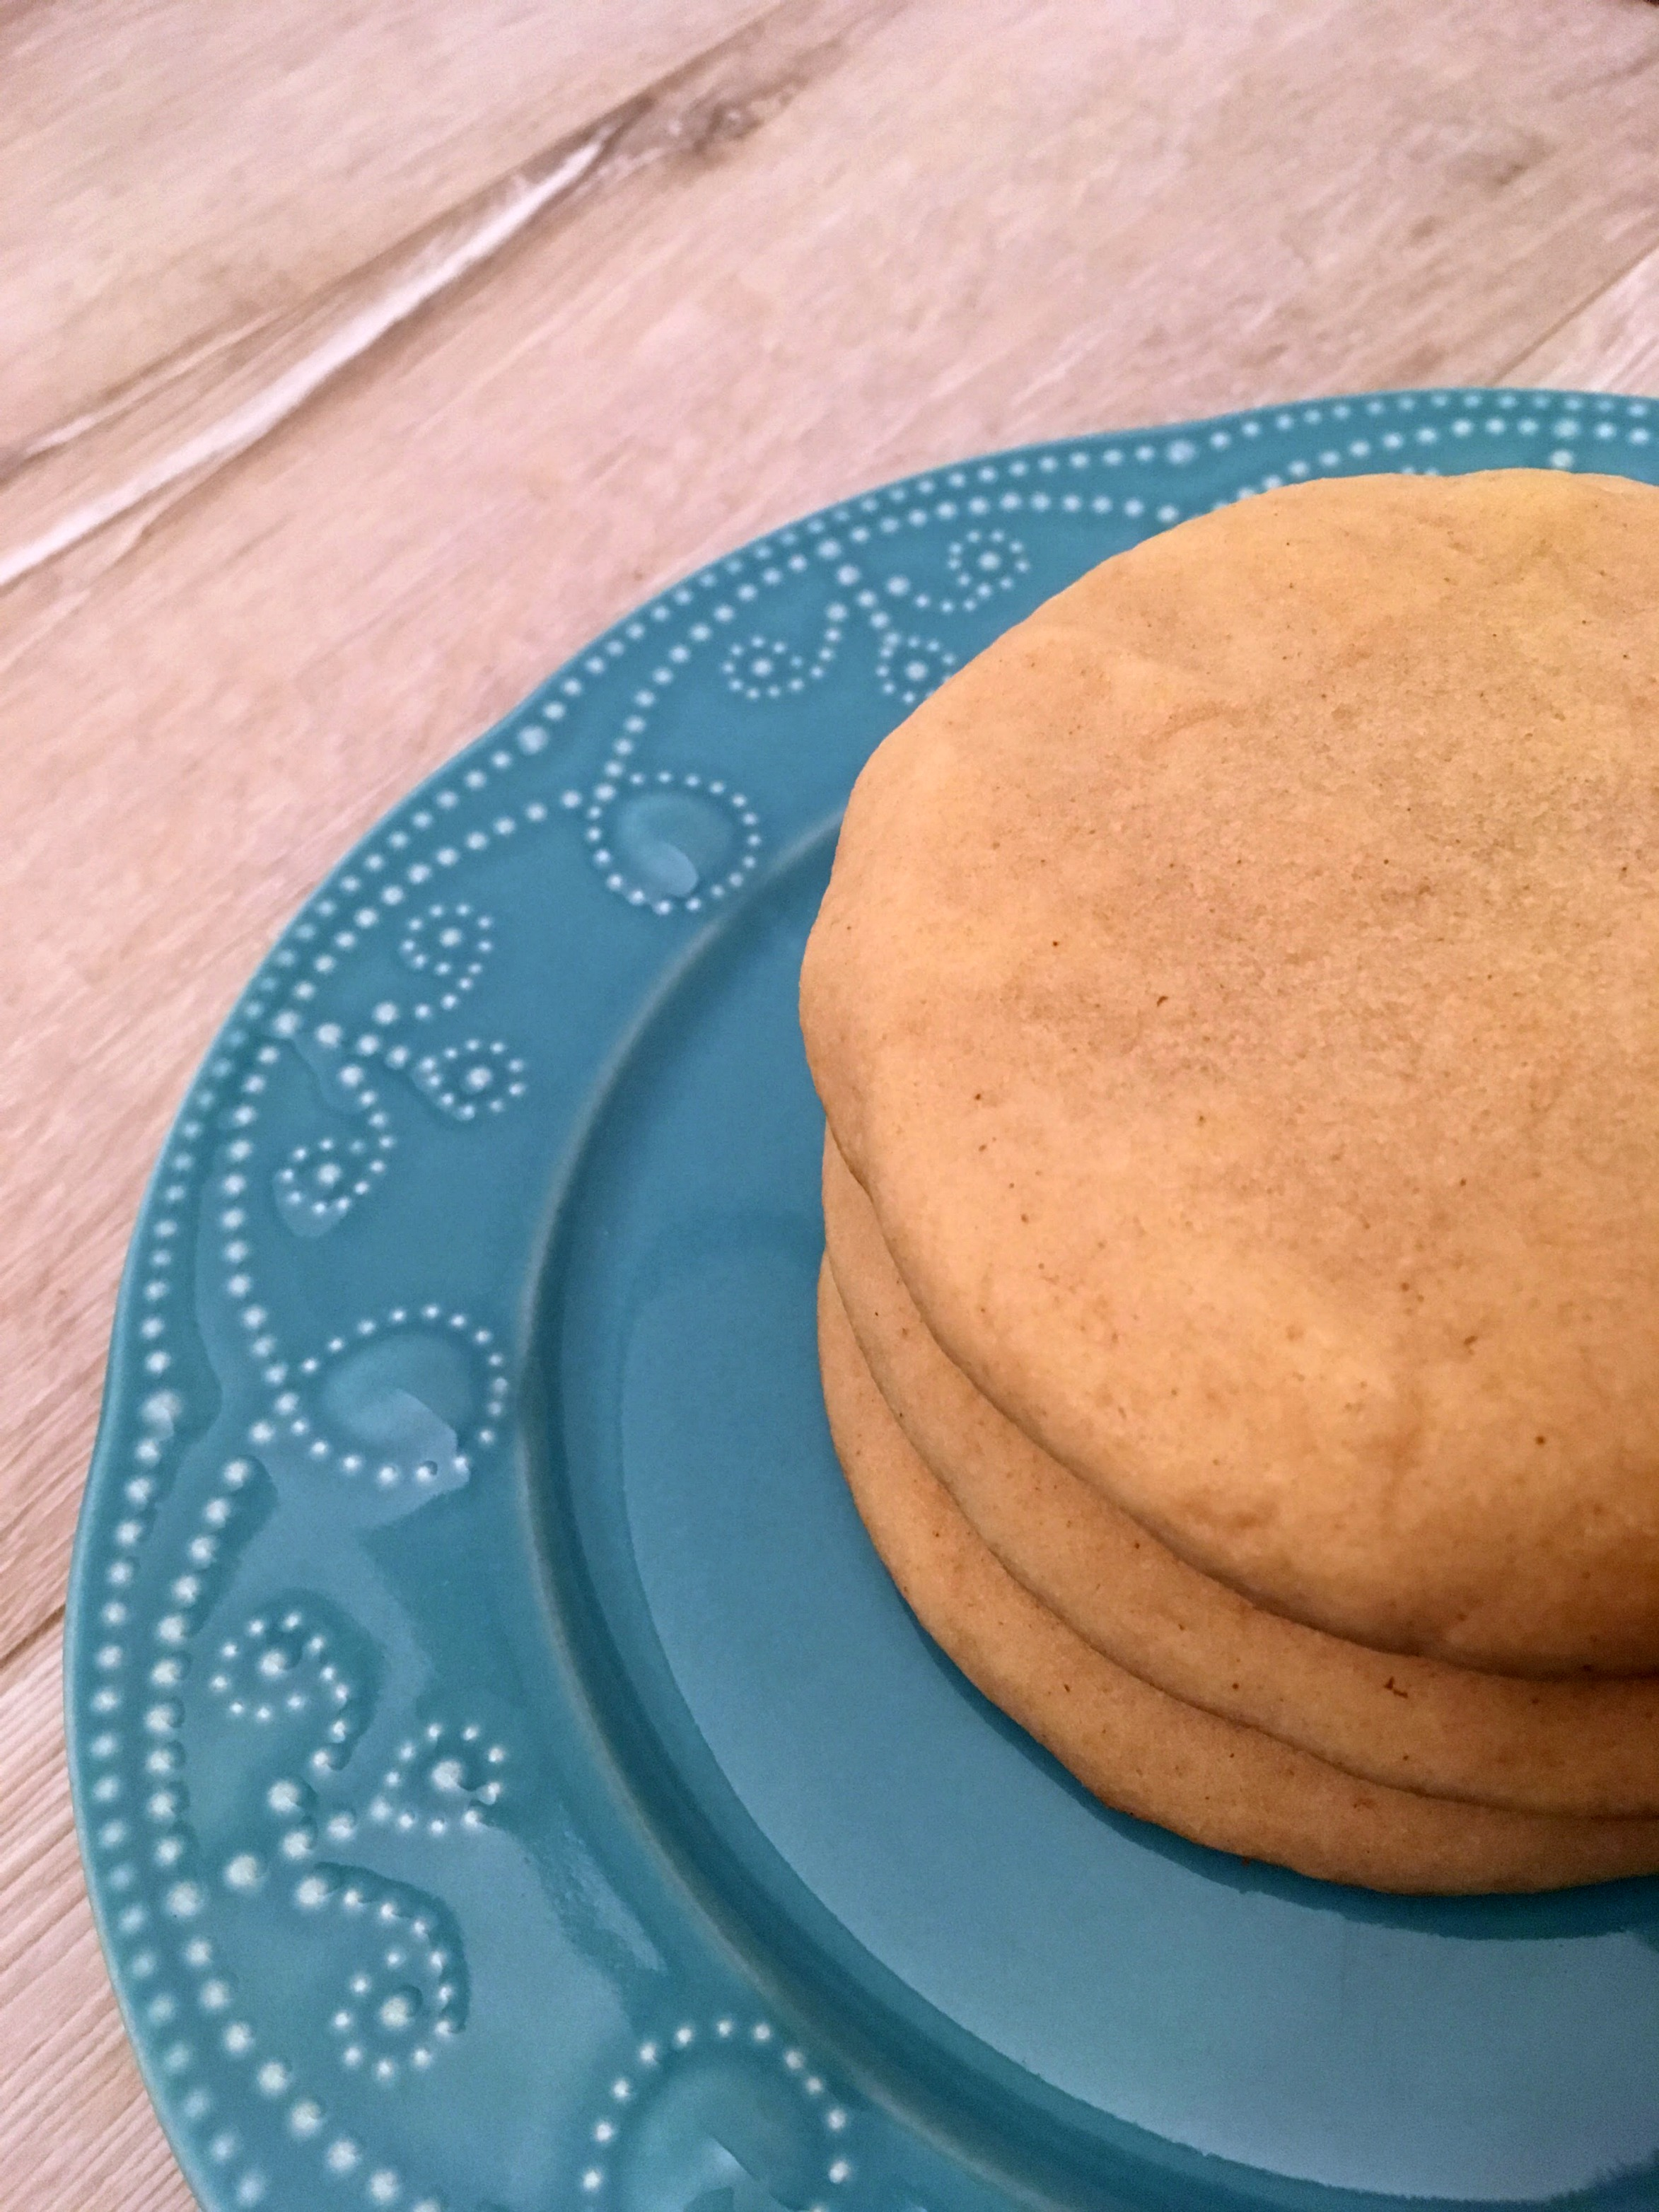 Giant, chewy and soft peanut butter cookies. These peanut butter cookies pair perfectly with a giant glass of milk.